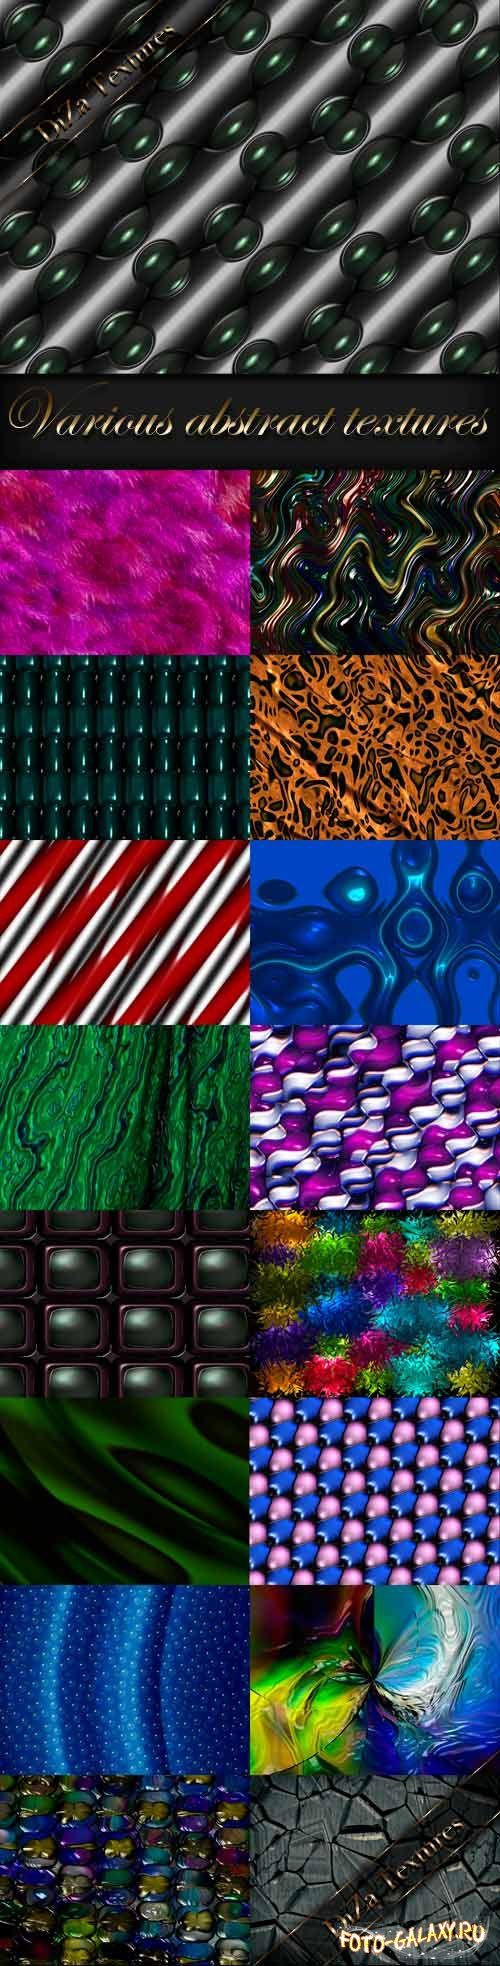 Various abstract textures